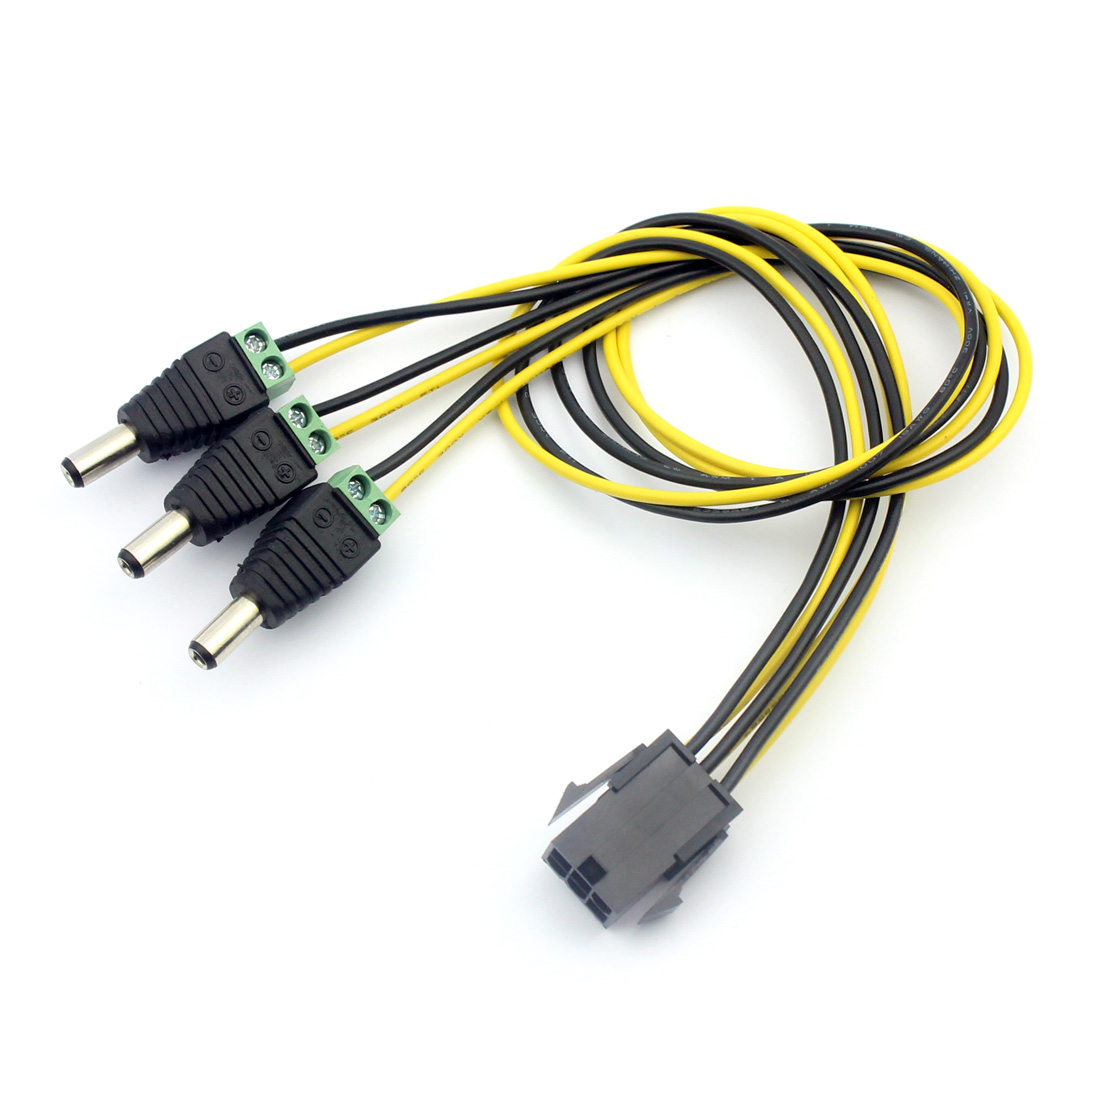 US$ 1.24 - PW-068 6pin to DC Power Connector PCI-E PCI Express PCIE ...